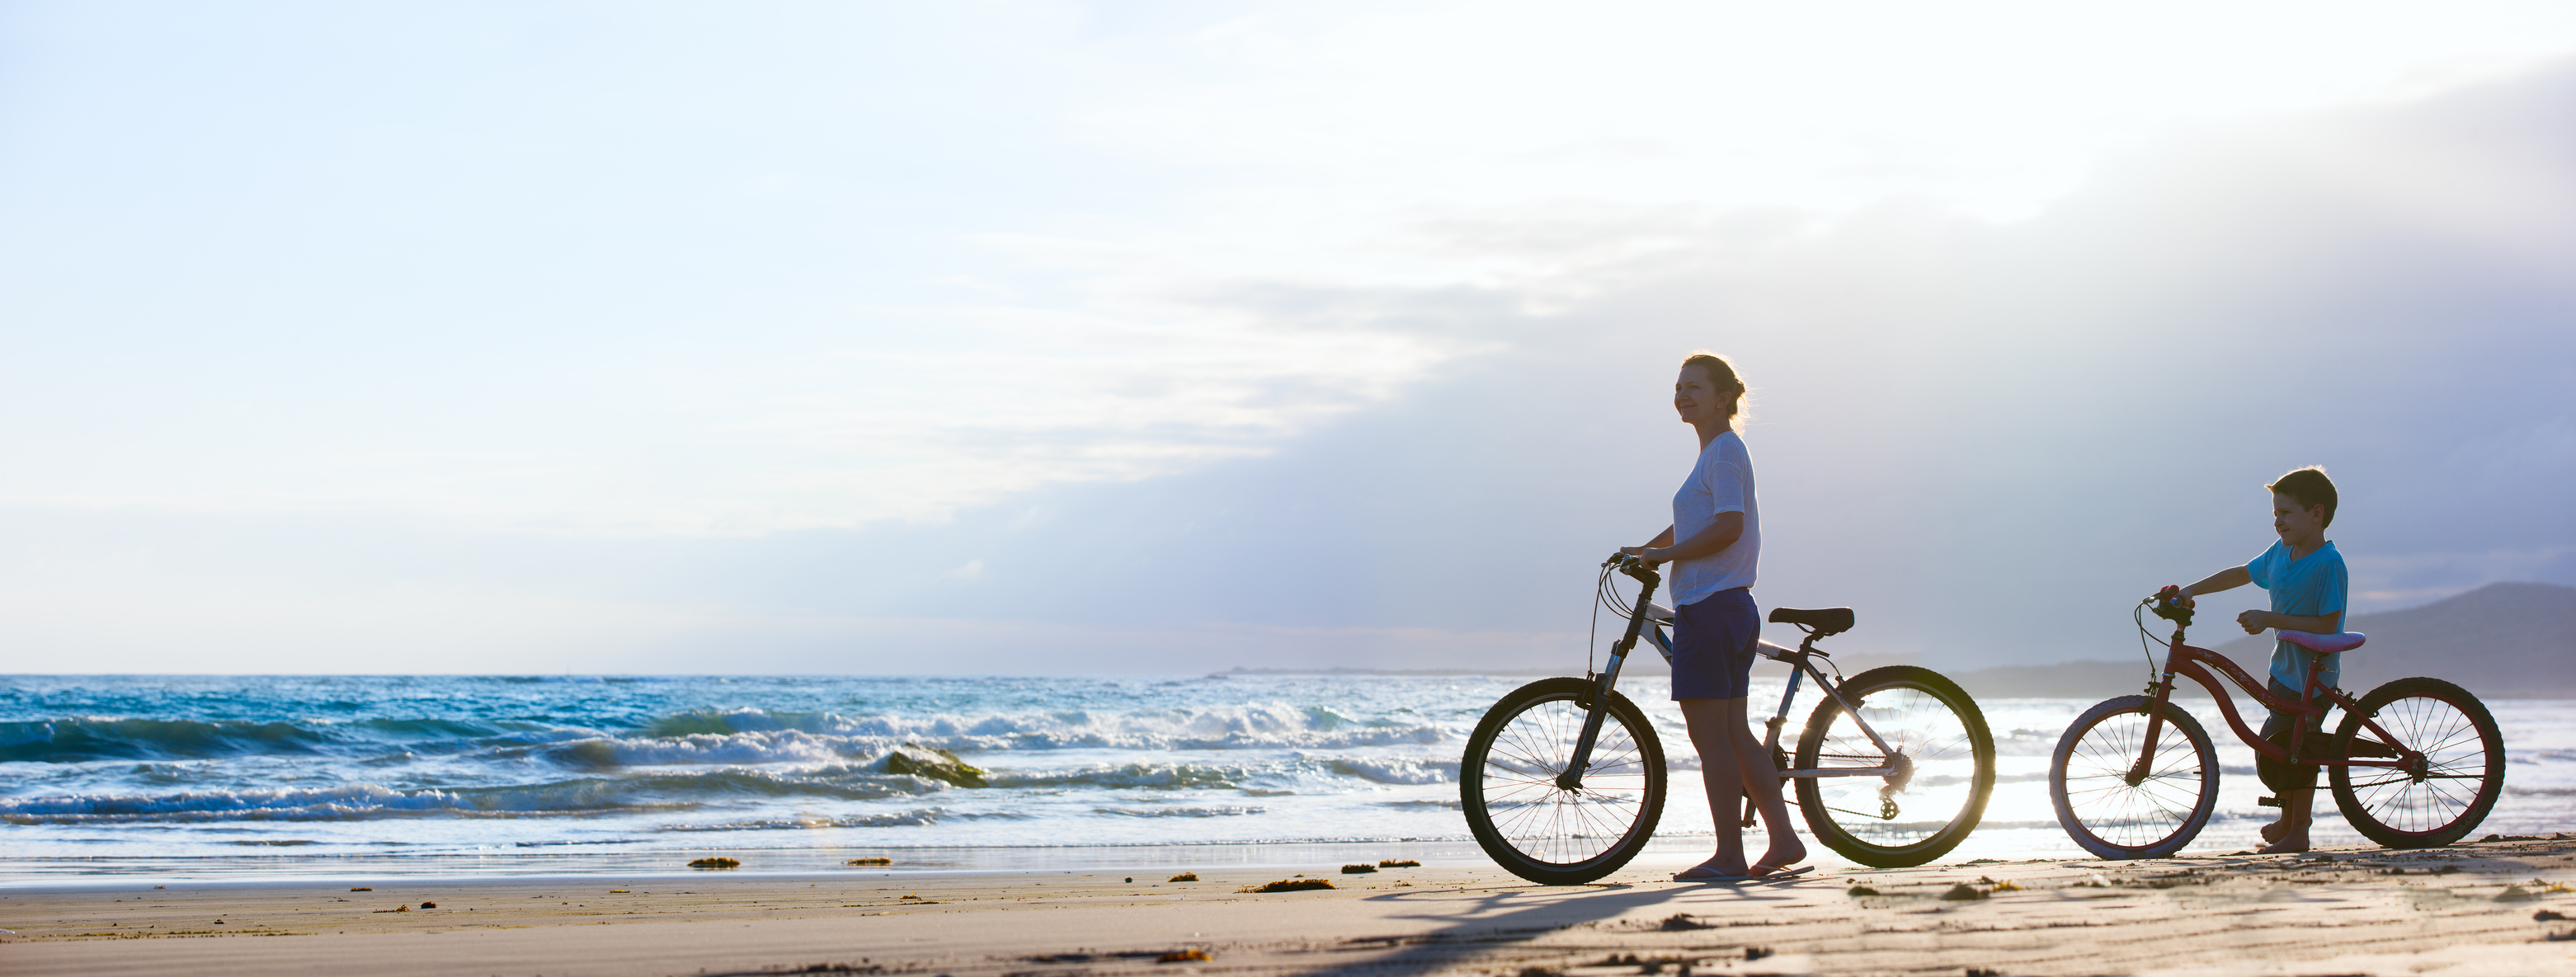 Mother and son biking at beach